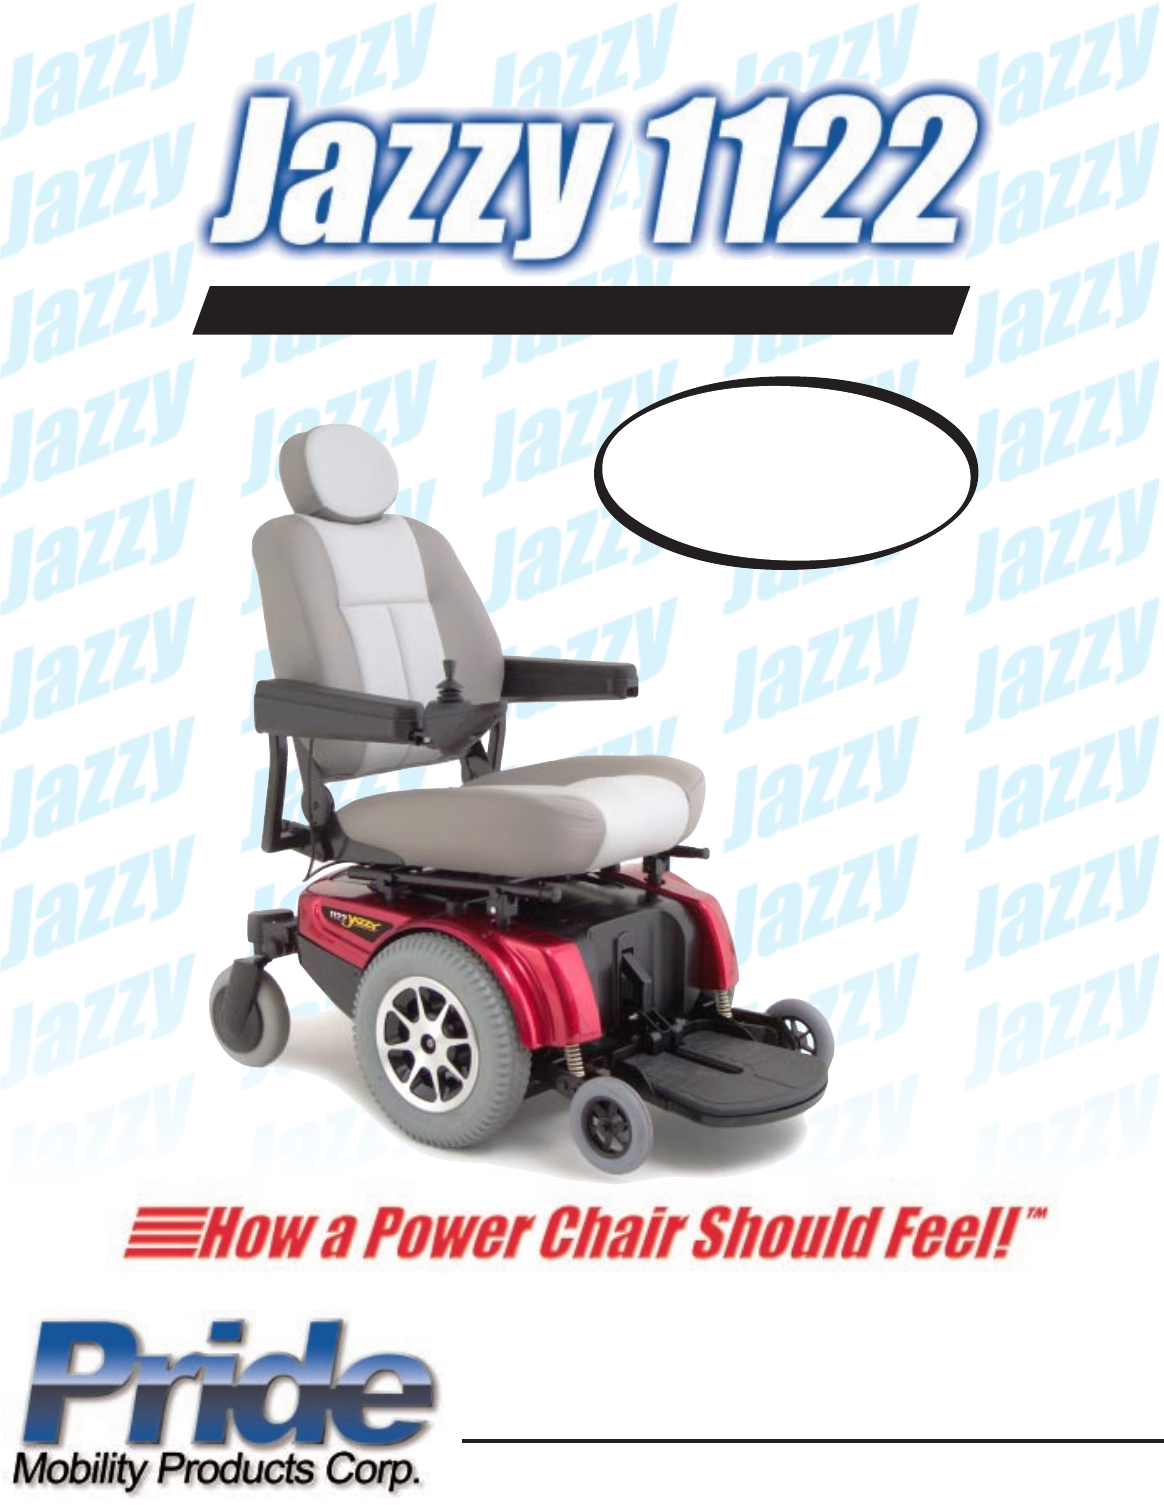 pride mobility mobility aid jazzy 1122 user guide manualsonline com rh personalcare manualsonline com jazzy 1122 parts manual jazzy 1122 wheelchair manual